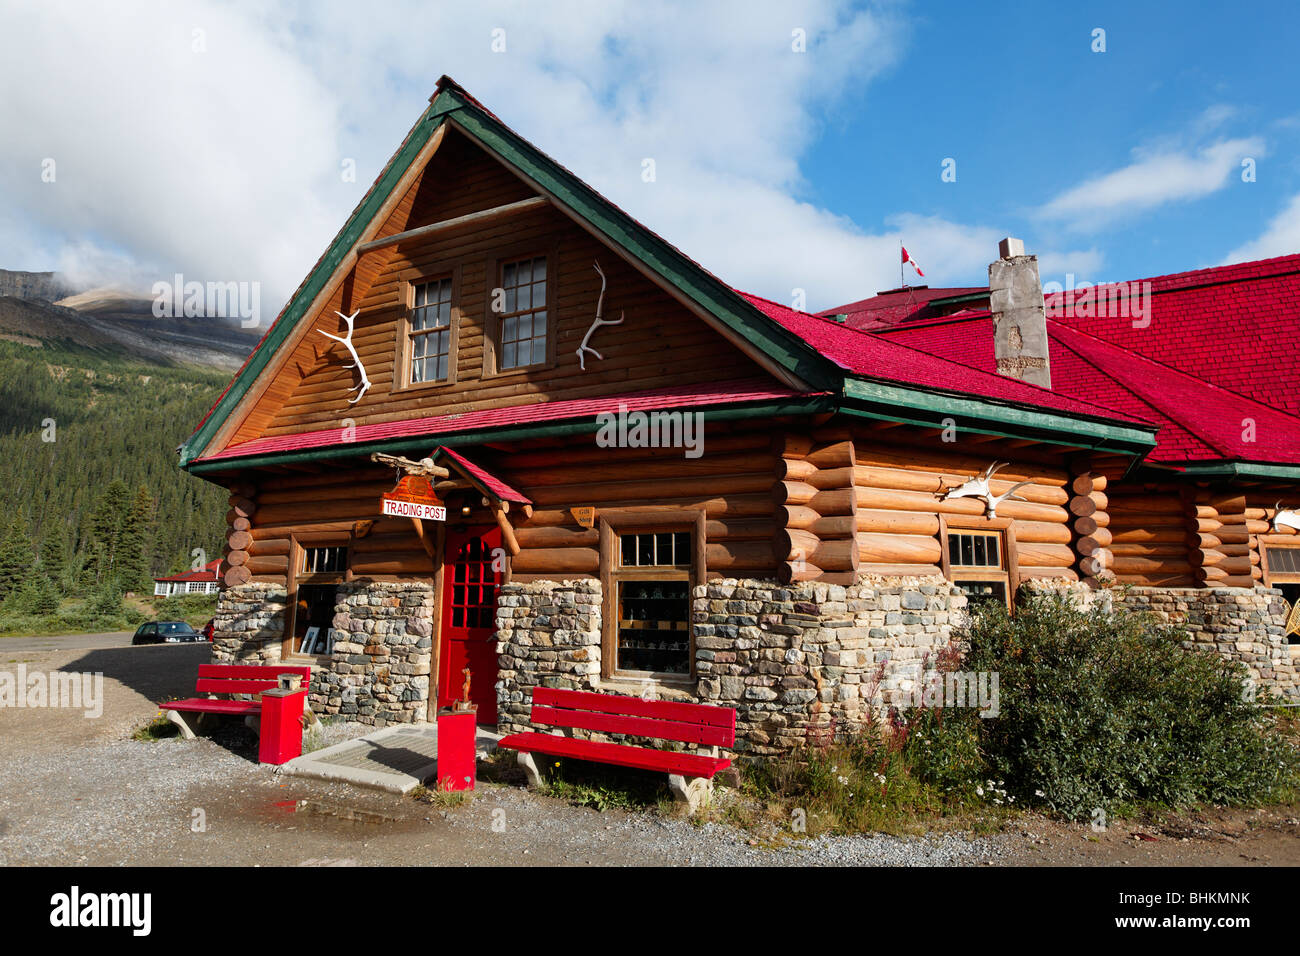 Close Up View of a Lodge, Num Ti Jah Lodge, Bow Lake, Banff National Park, Alberta, Canada - Stock Image